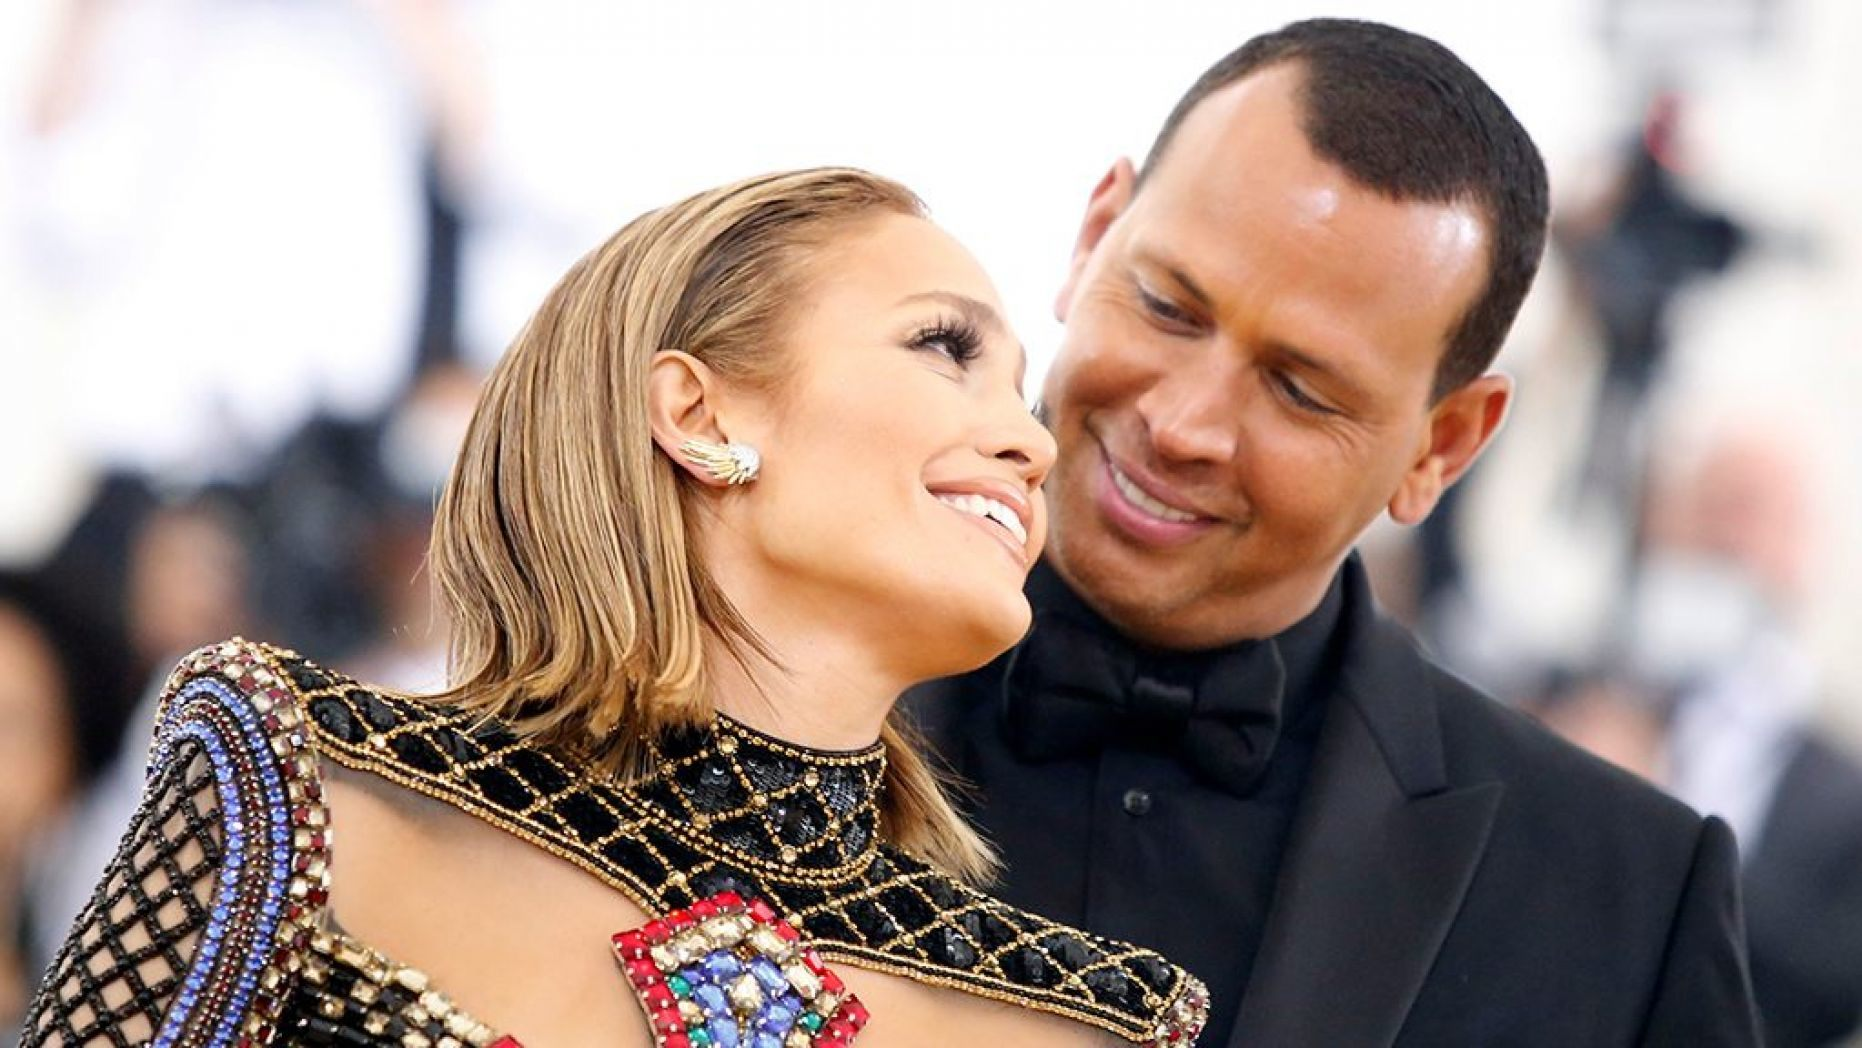 Jennifer Lopez Gets Engaged to Alex Rodriguez! Know Their Dating History